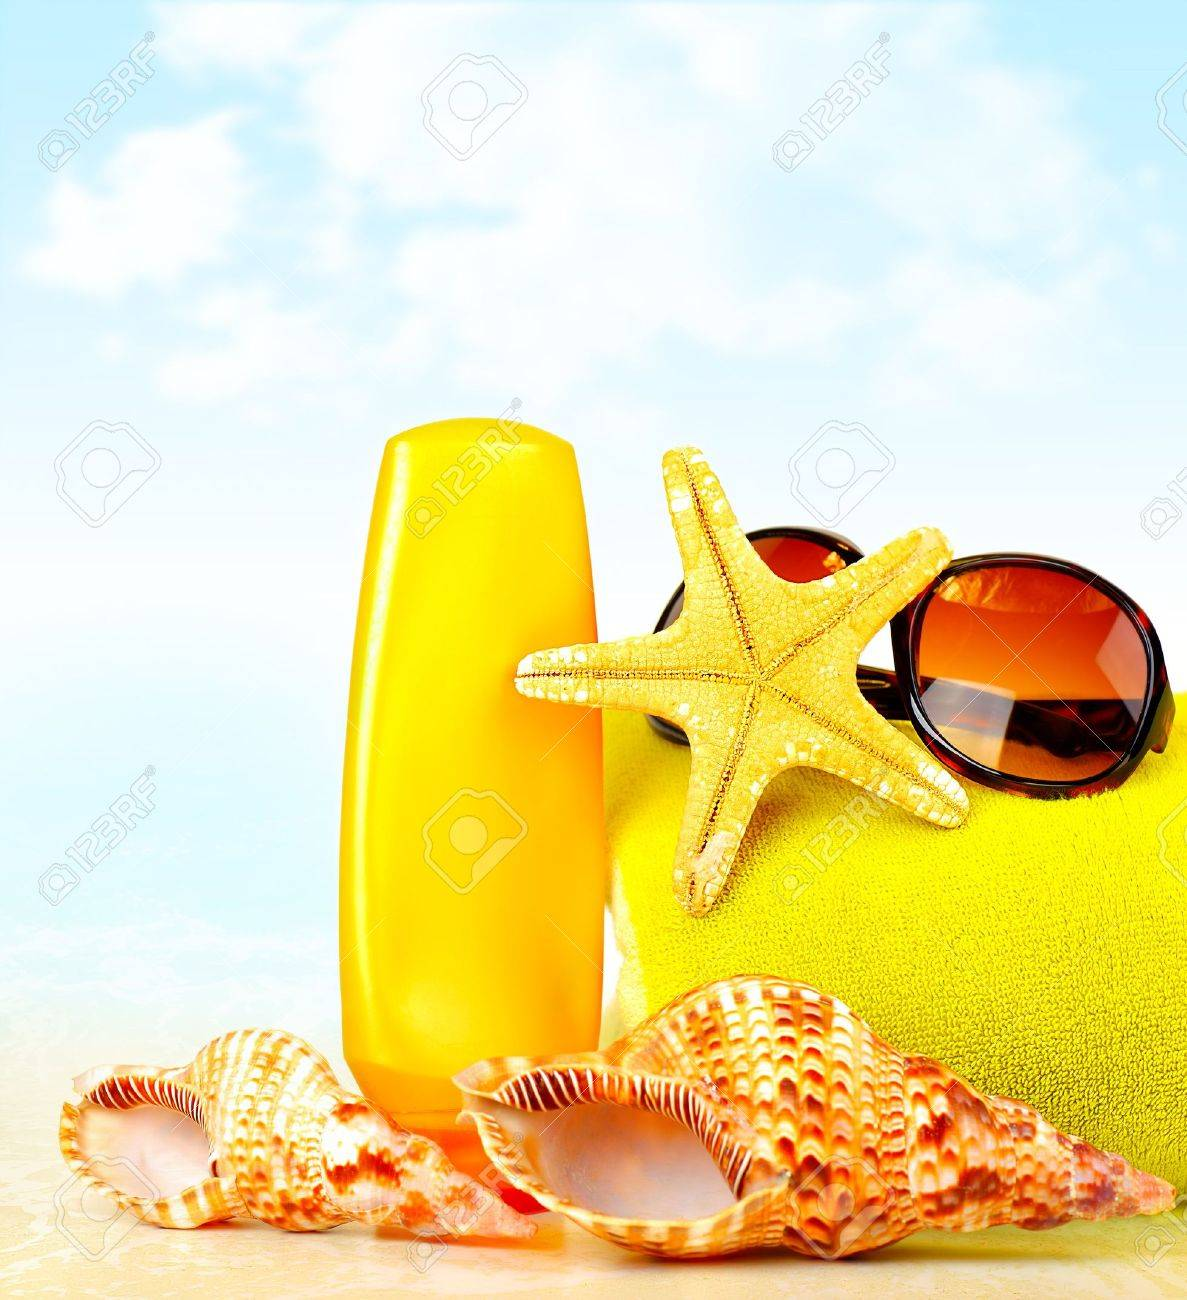 summertime holidays background beach objects on the sand fun